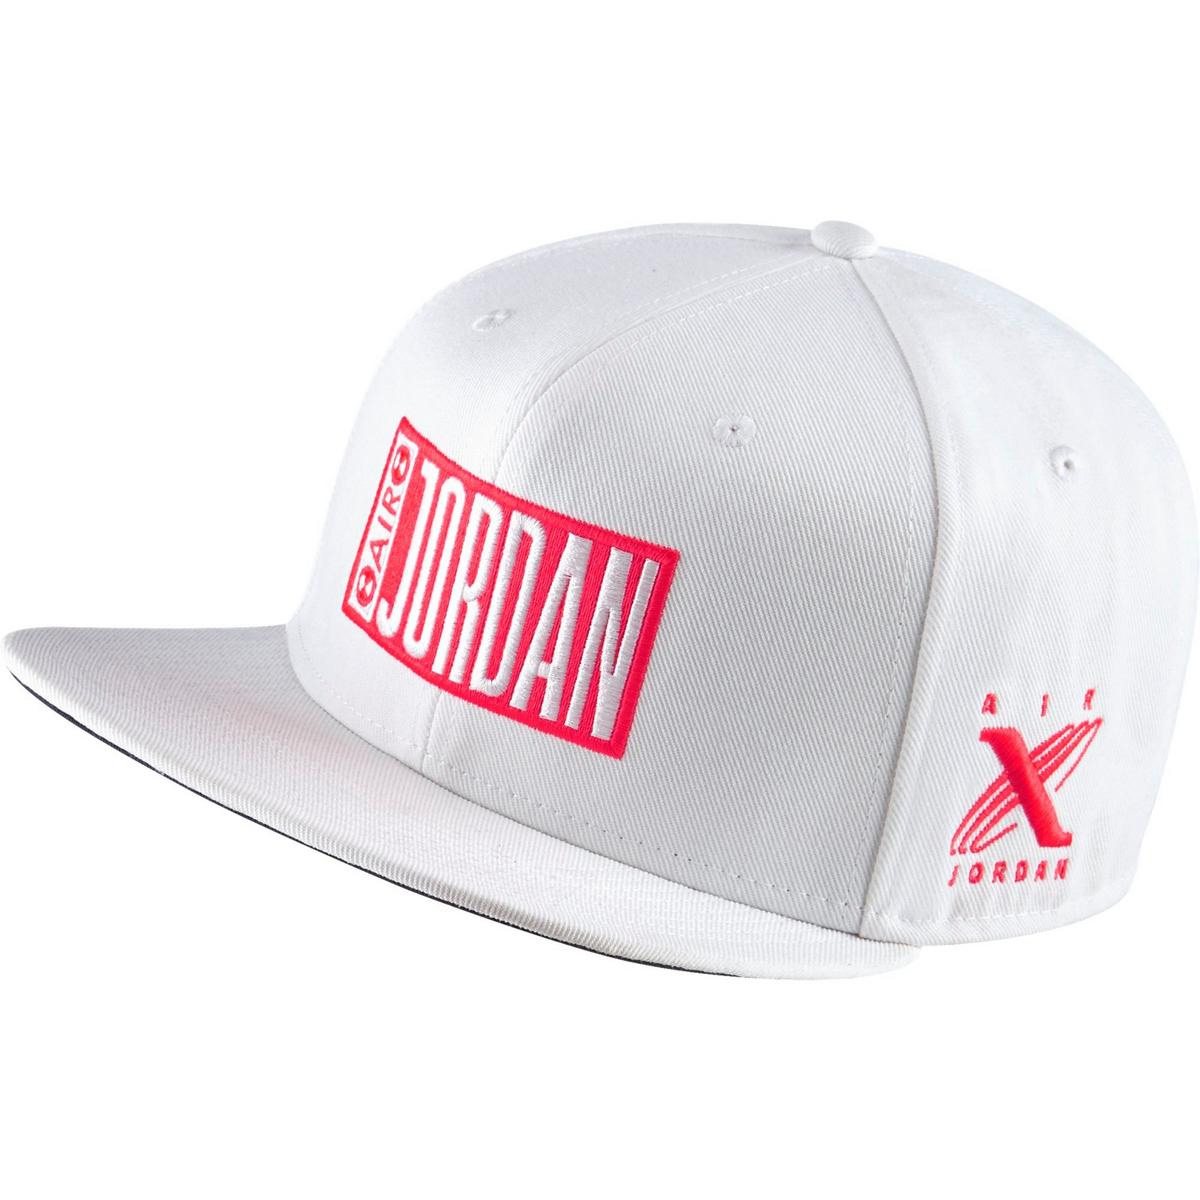 5999cf4d425e Details about JORDAN Pro Legacy Jumpman Air Snapback Hat Cap Nike Flight  Adjustable AA5746-100